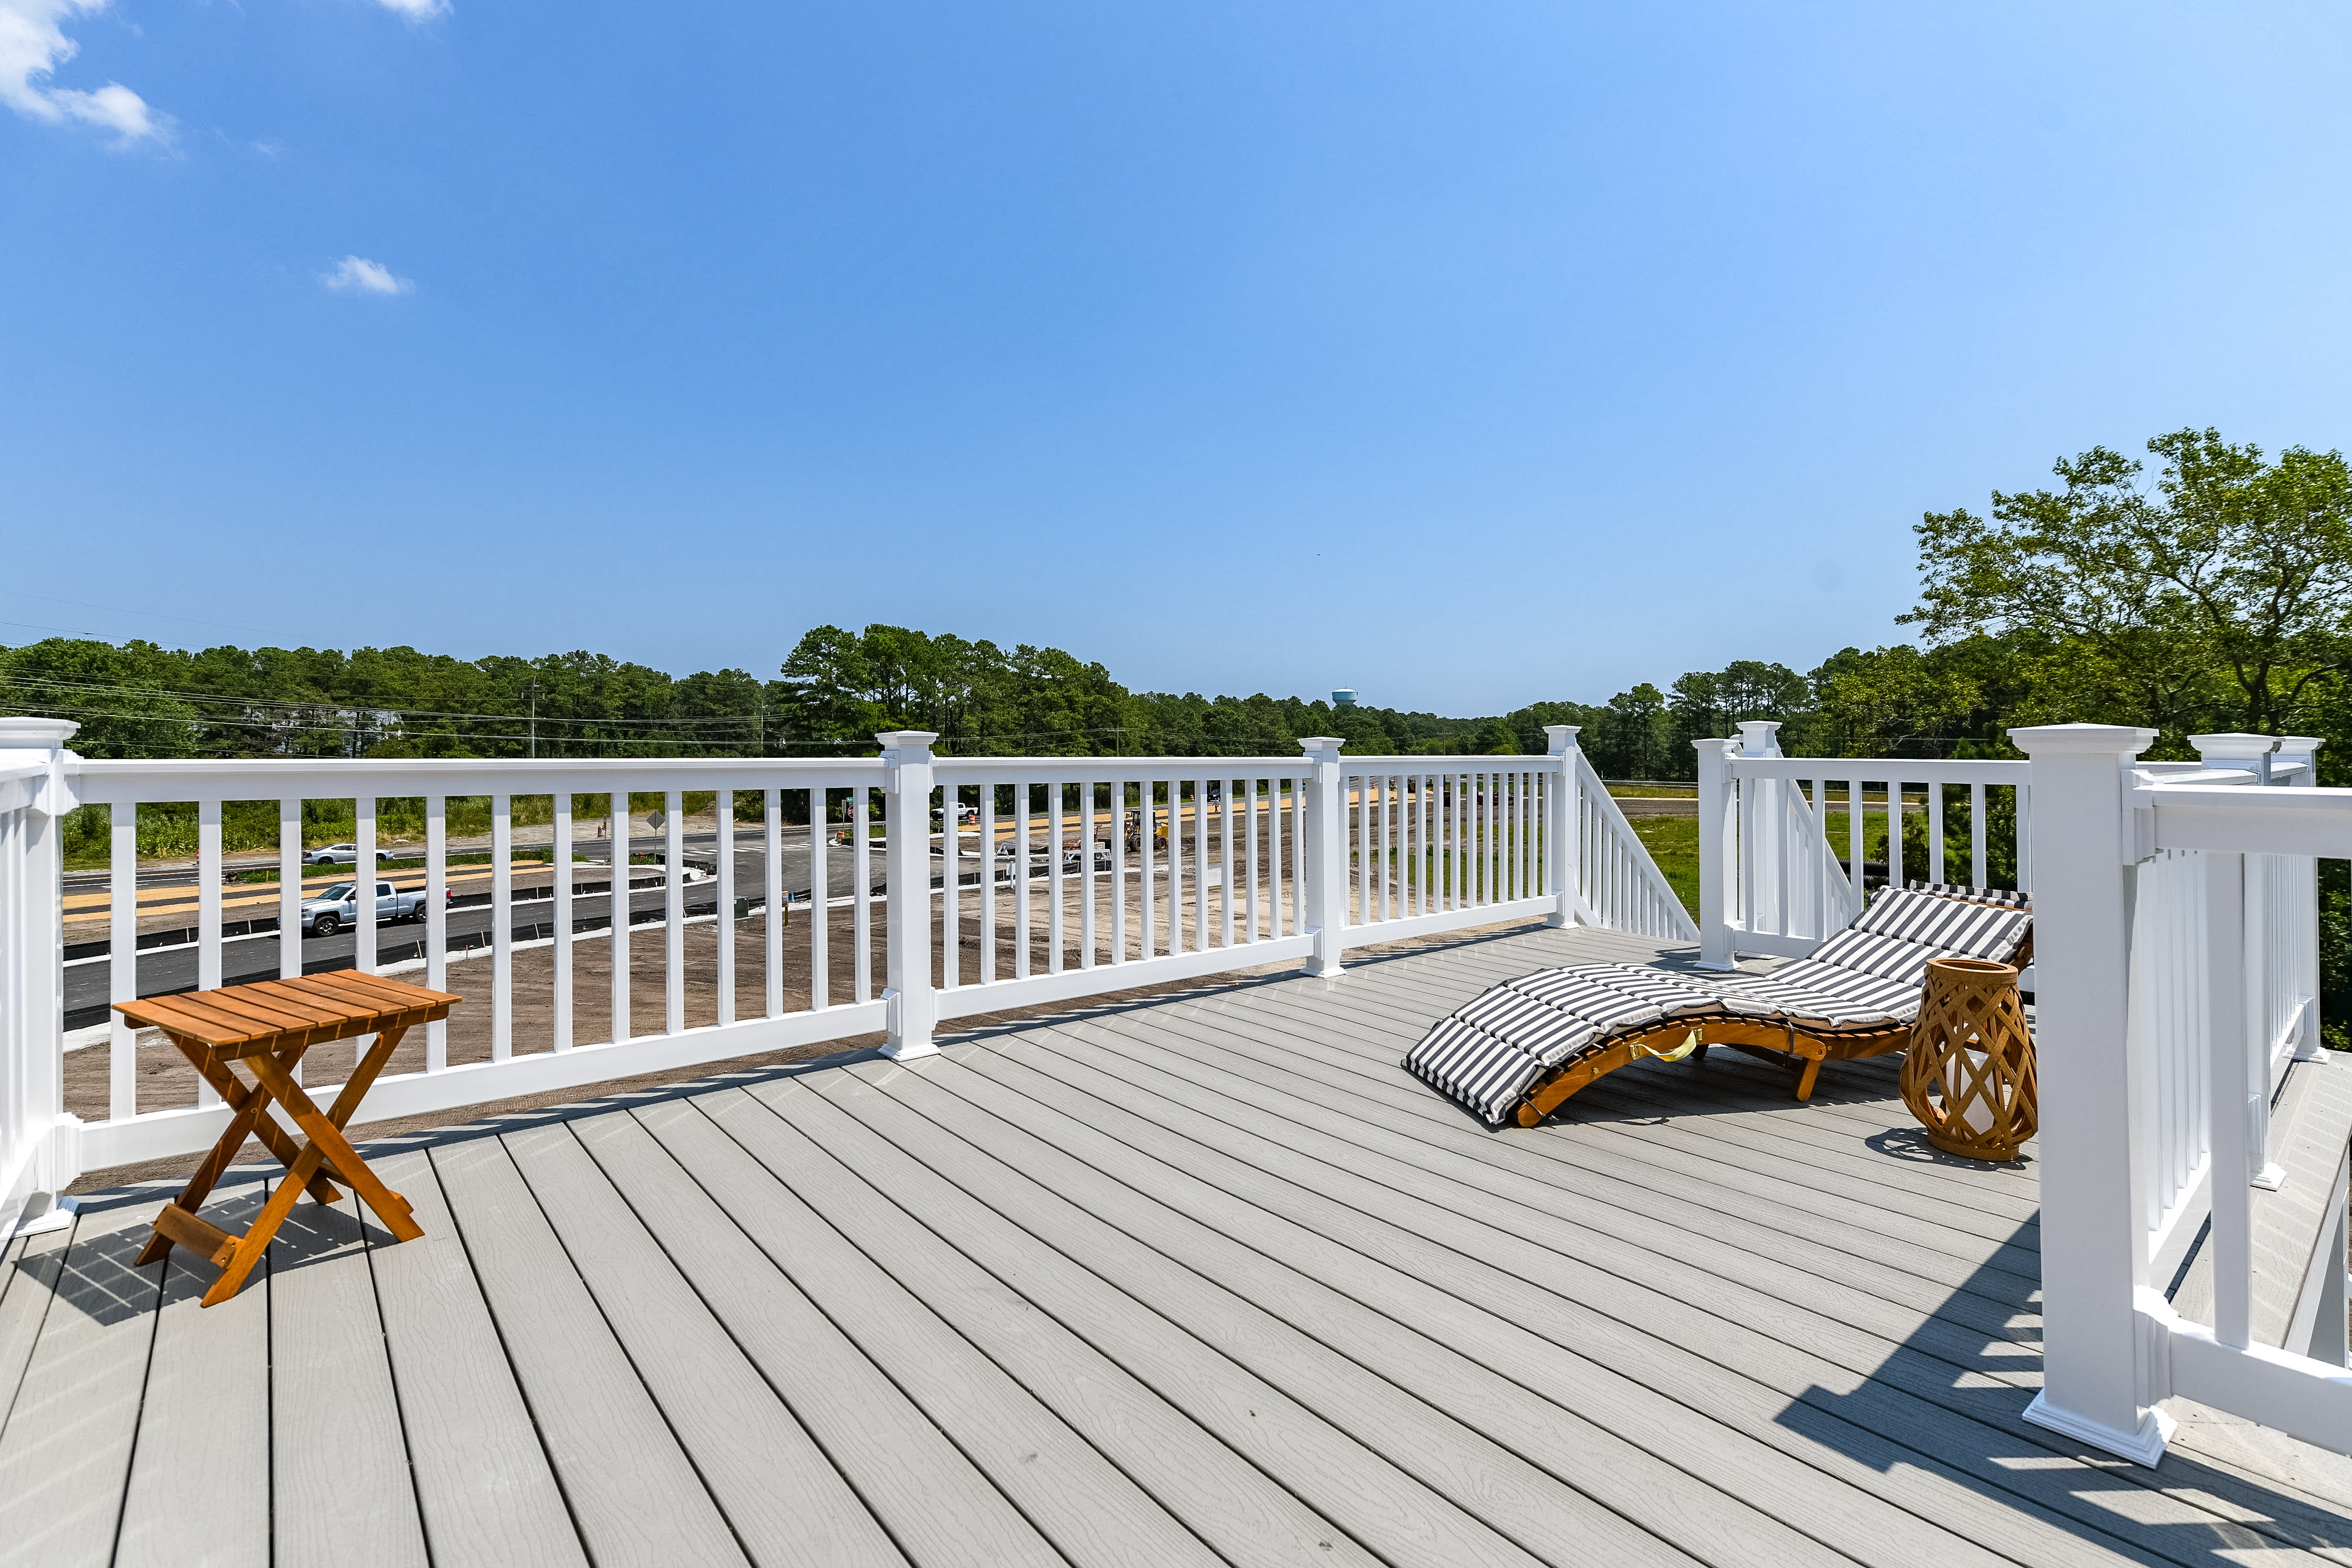 Sundeck and View of Sky Beyond